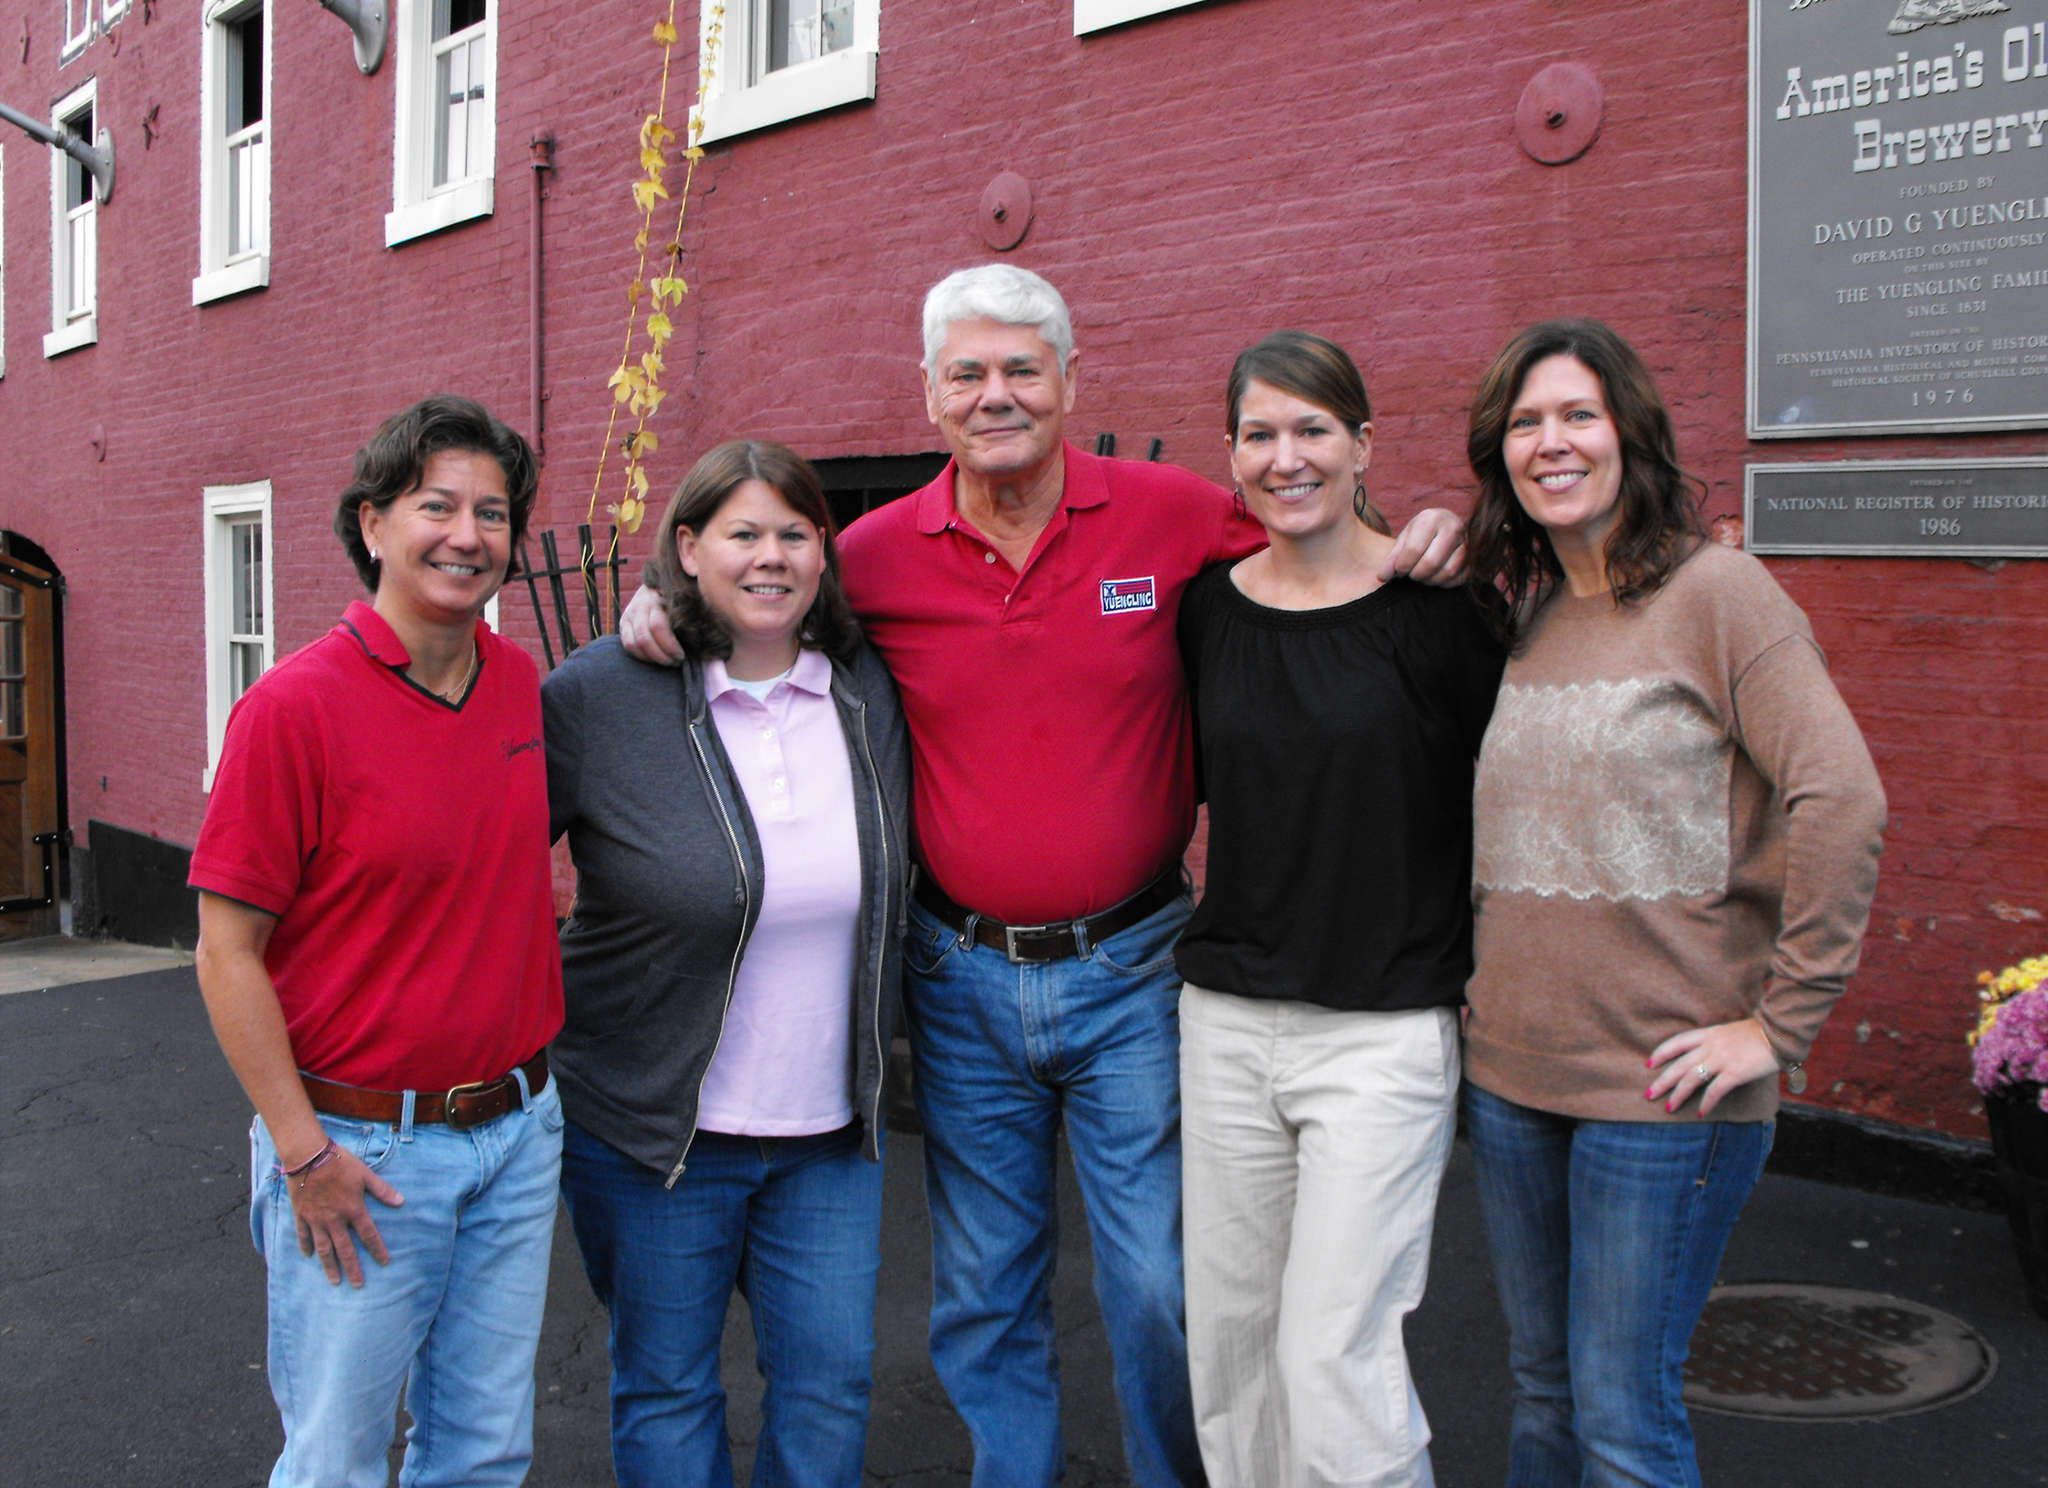 """Richard """"Dick"""" Yuengling, fifth-generation owner-operator, with daughters (from left) Jennifer, Sheryl, Wendy, and Debbie. Now, he envisions roles for a seventh generation of Yuenglings."""